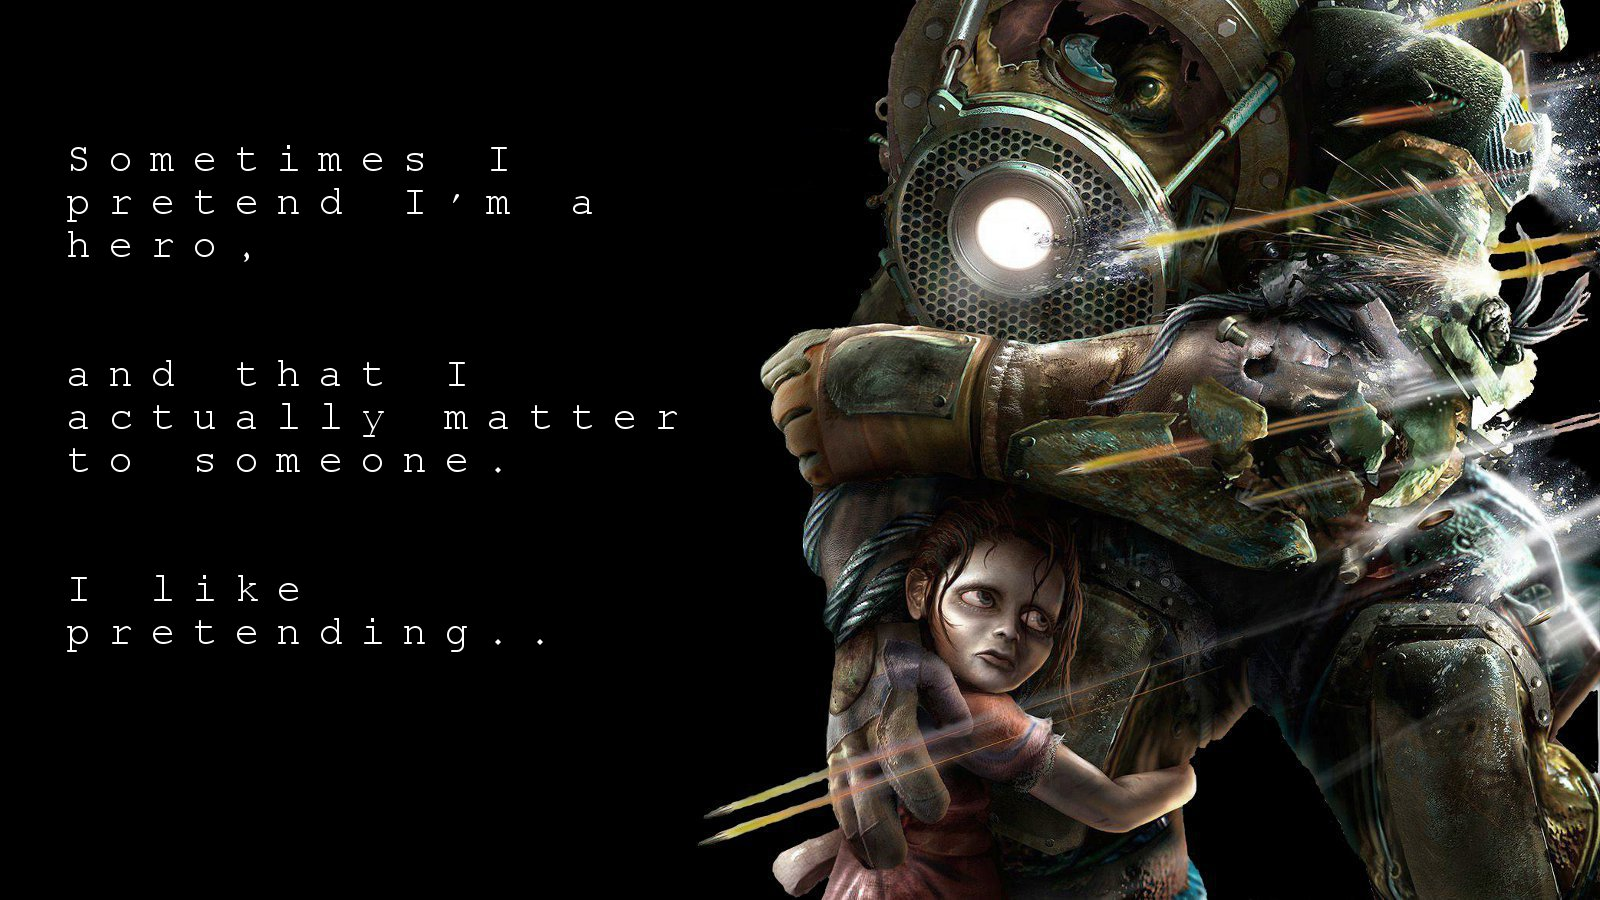 3840x1080 Hd Wallpapers Sad Quote Bioshock Wallpaper And Background Image 1600x900 Id 404676